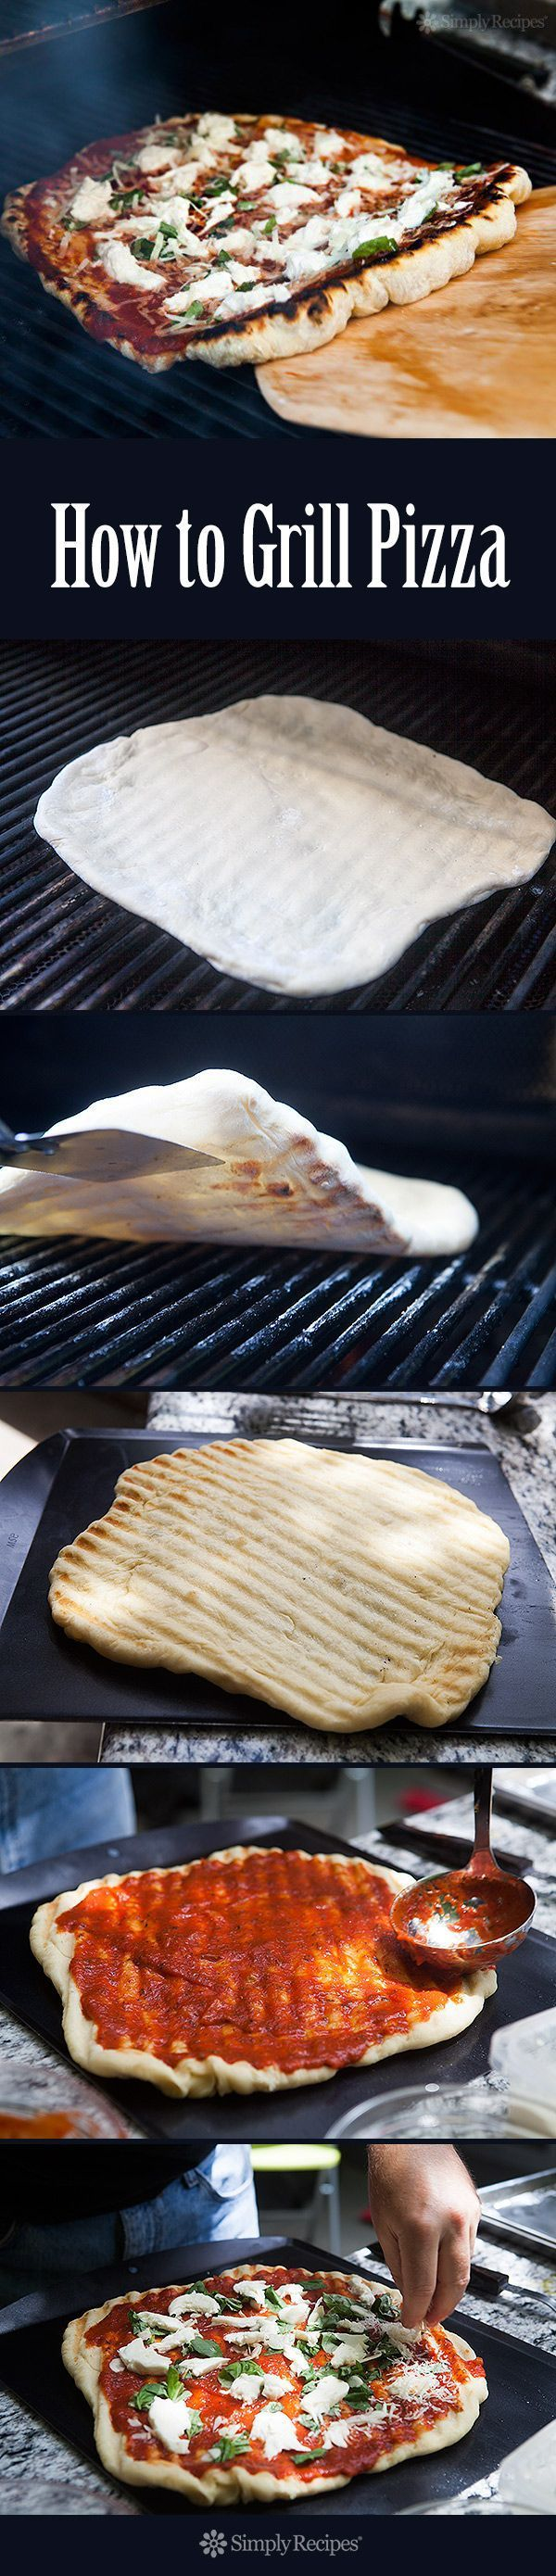 Grilling pizza is the easiest way to make pizza, and you get that great grilled flavor too. NO, the dough does not fall through the grates! See the step-by-step instructions